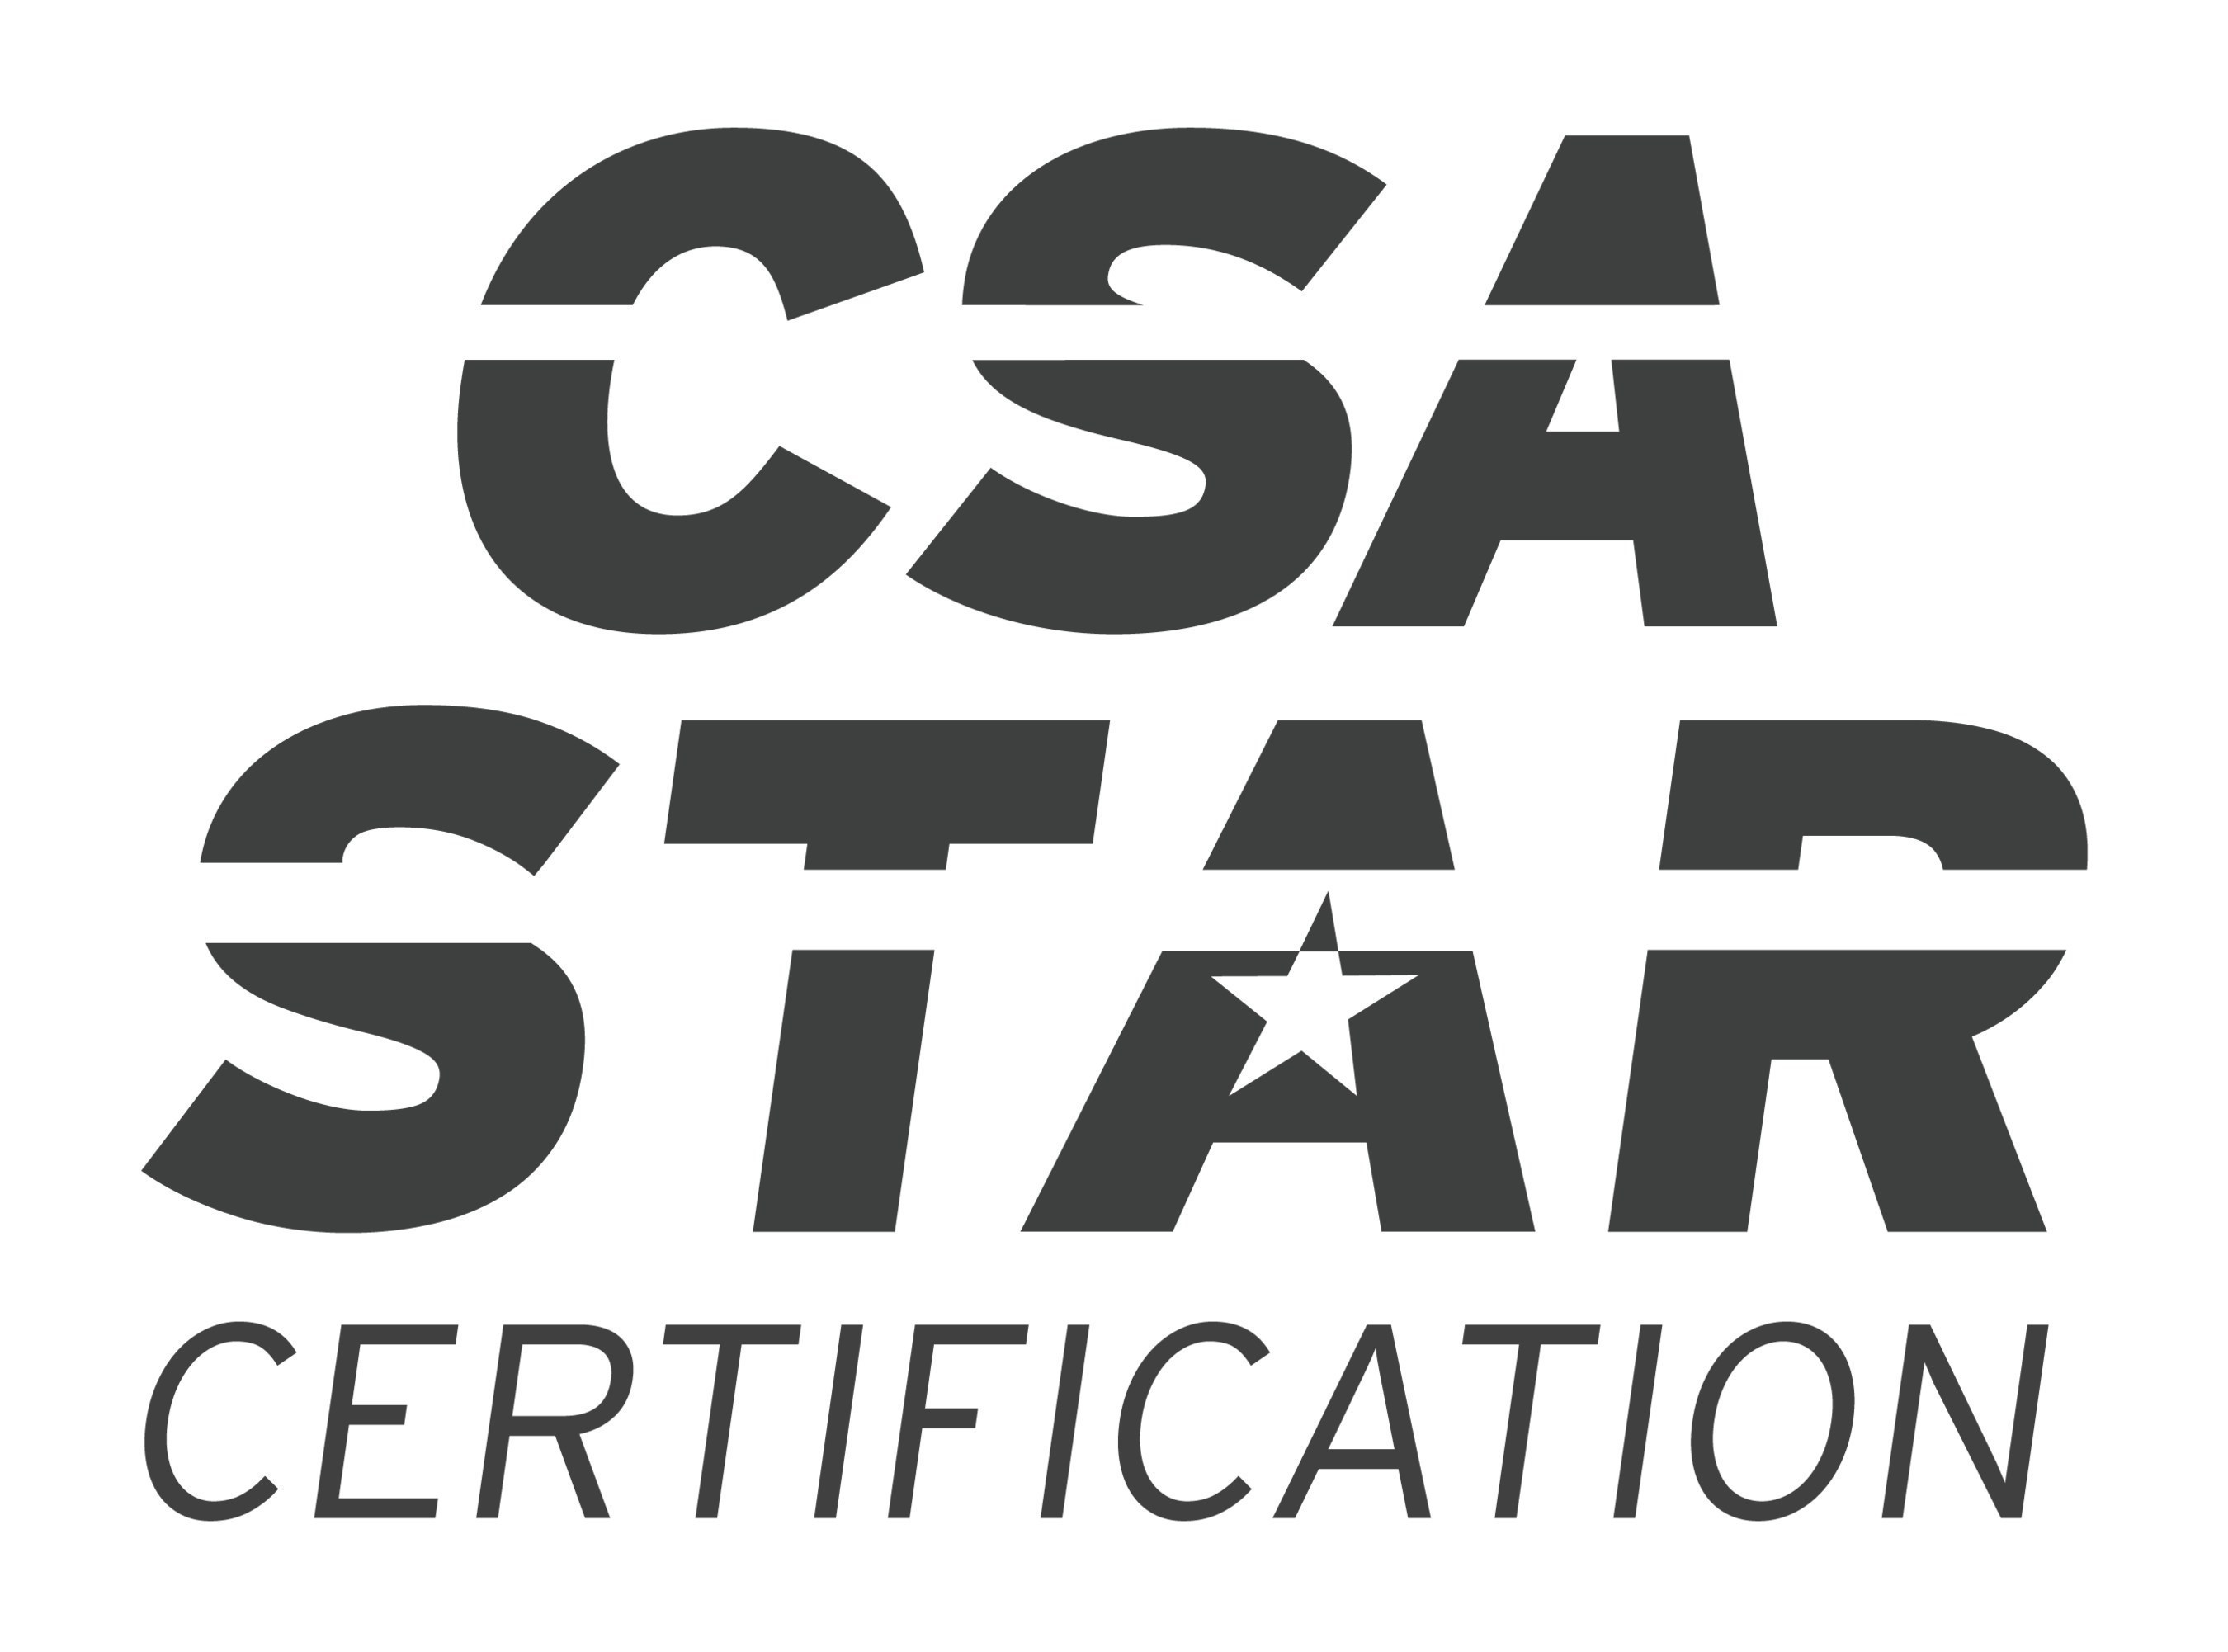 Ribose first to achieve csa star certification with new ccm 301 ribose achieves csa star certification to ccm 301 at gold 1betcityfo Choice Image